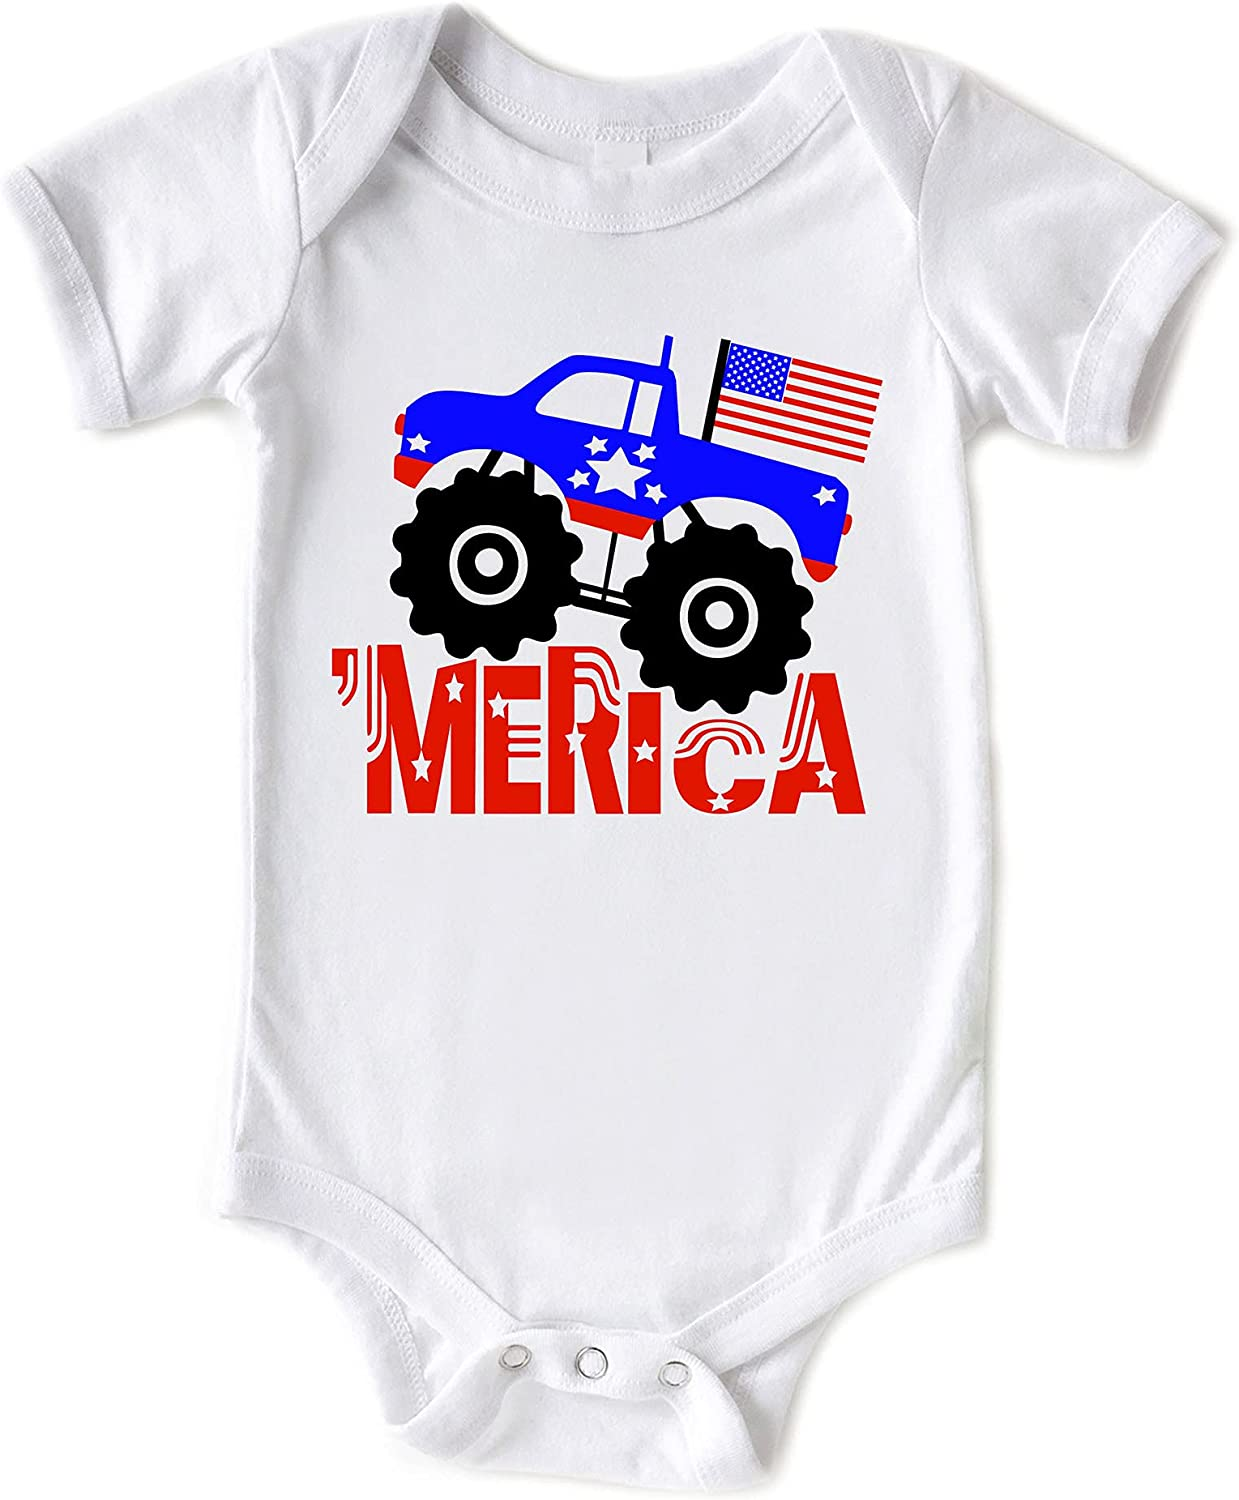 Little Spunkies Merica Monster Truck Baby Oakland Mall July 4th Summer of Inf specialty shop